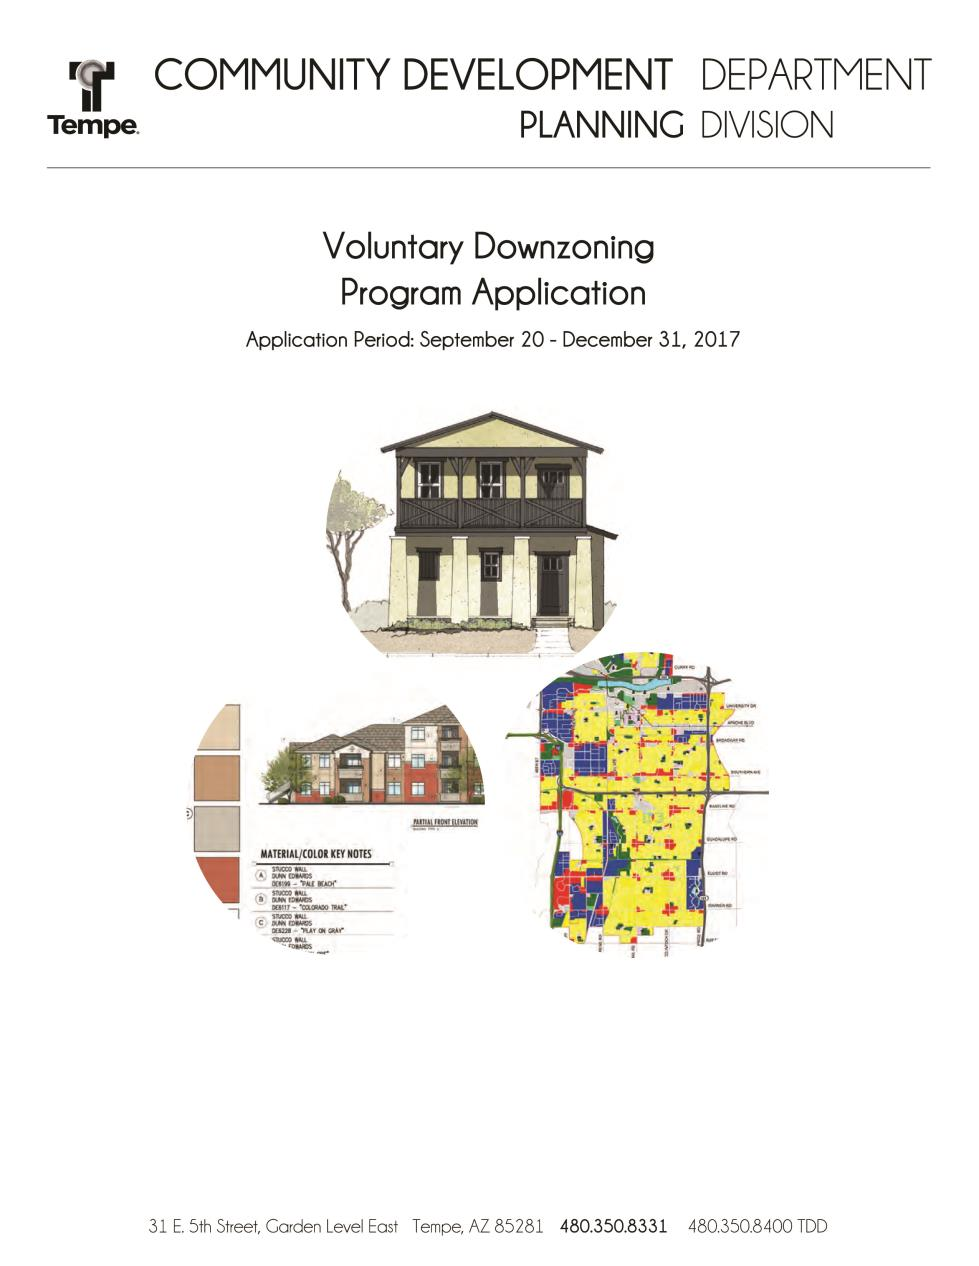 Voluntary Downzoning Cover Sheet-01